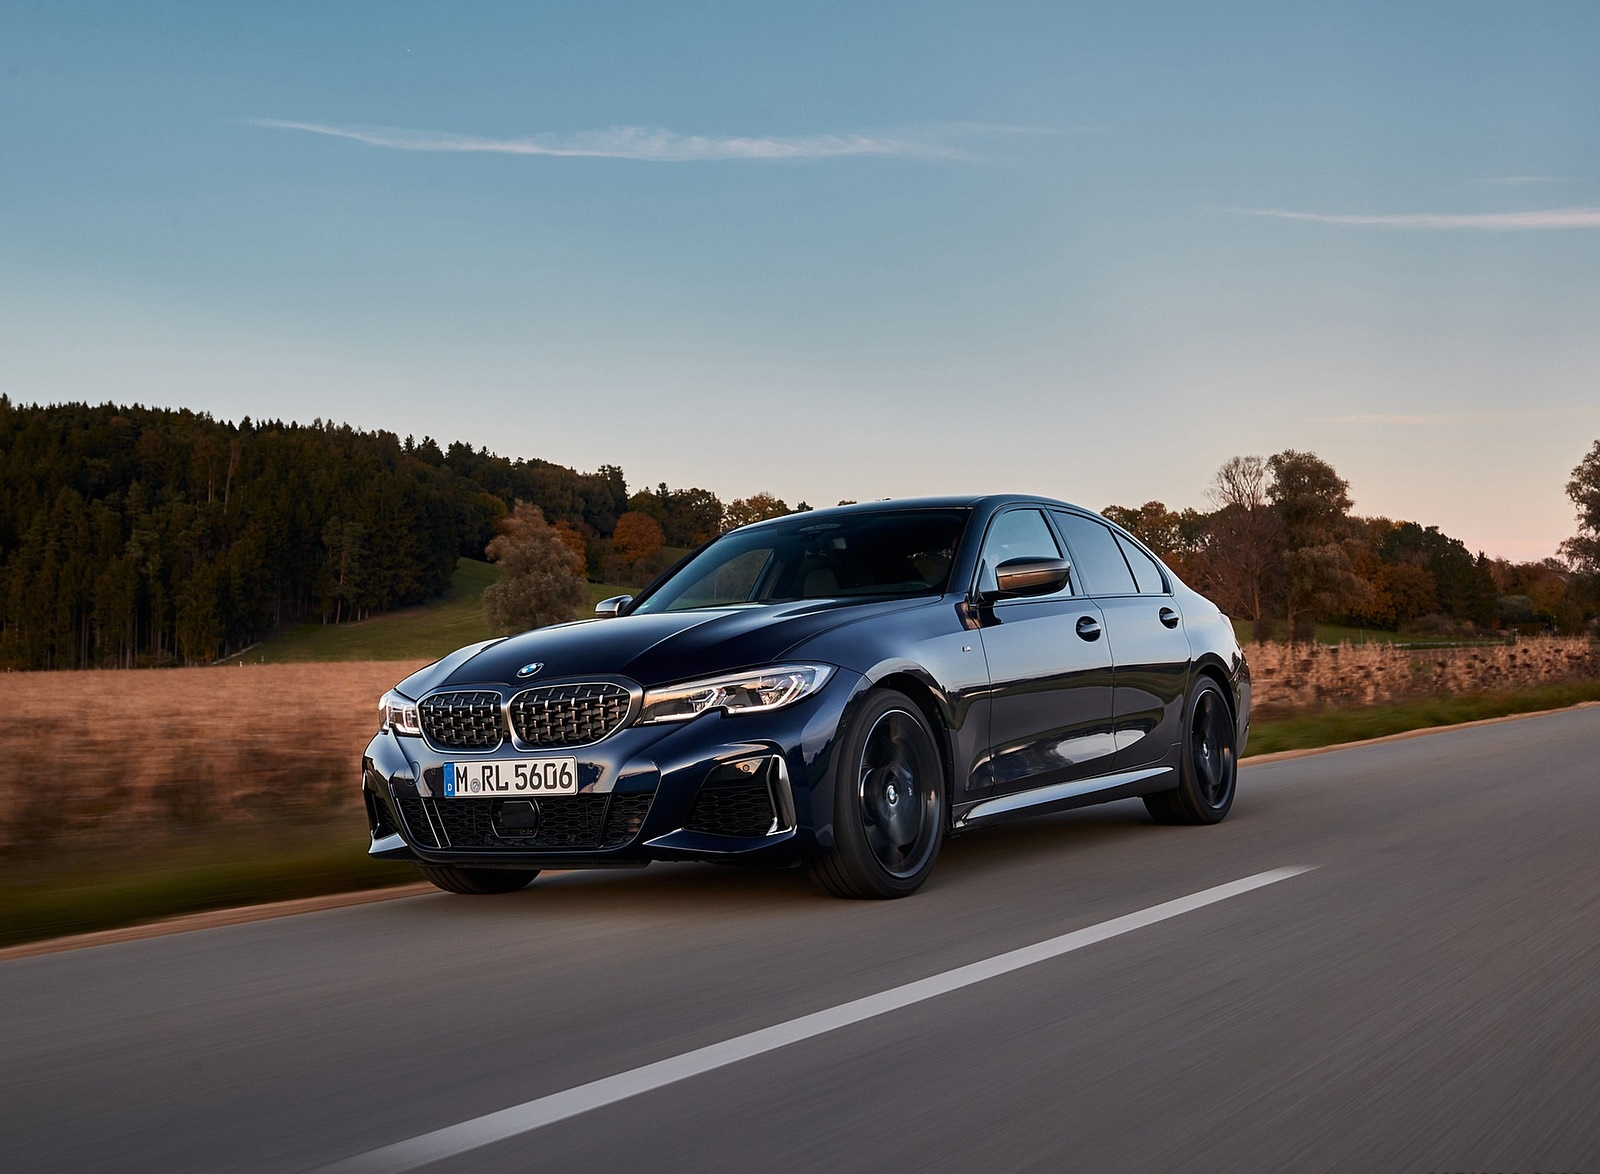 2020 BMW M340i Sedan (Color: Tanzanite Blue Metallic) Front Three-Quarter Wallpapers #16 of 74